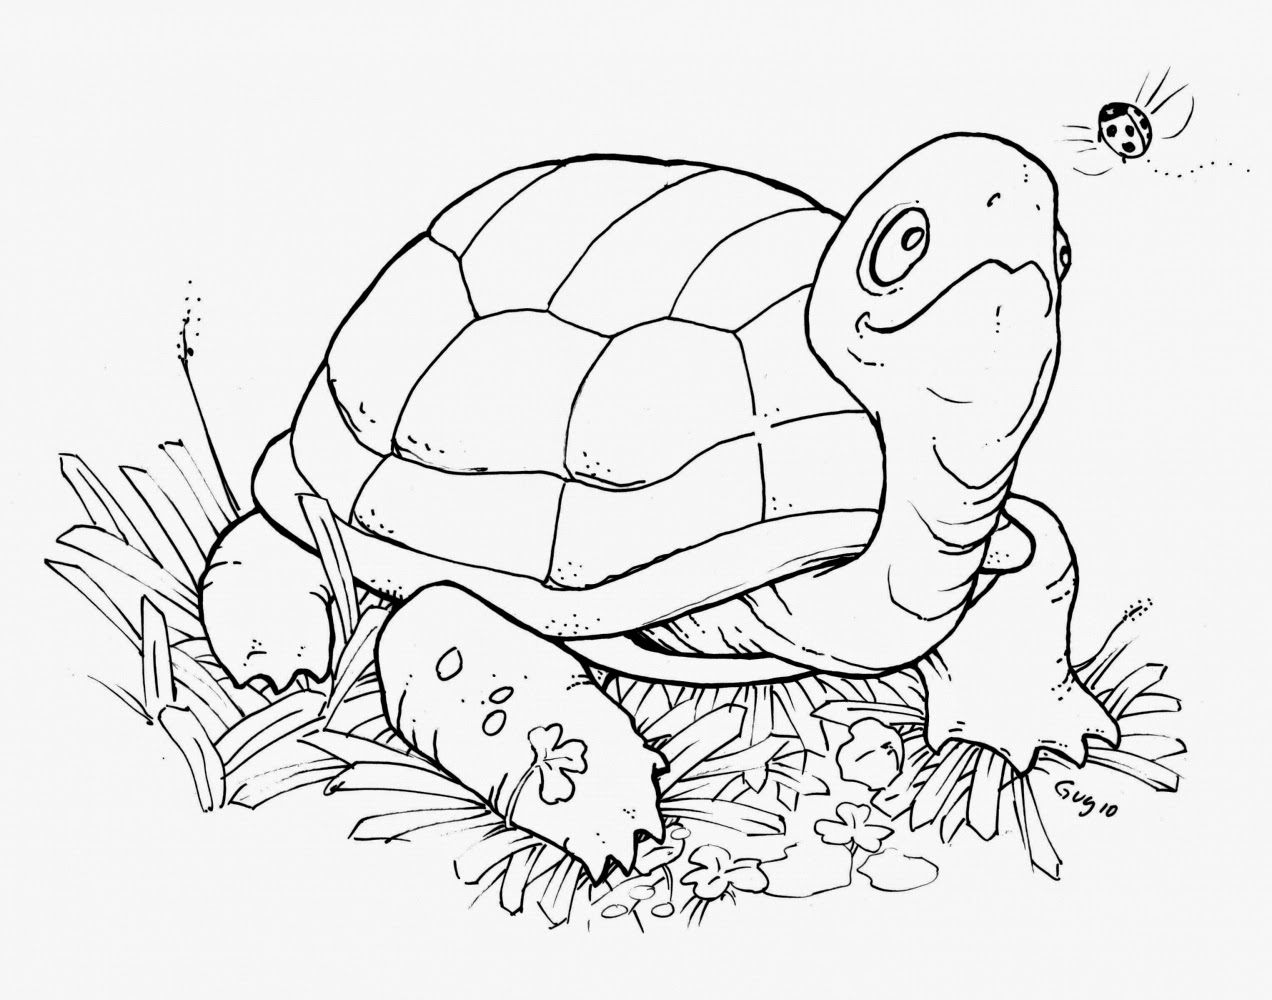 tortoise colouring pictures turtles to download turtles kids coloring pages tortoise colouring pictures